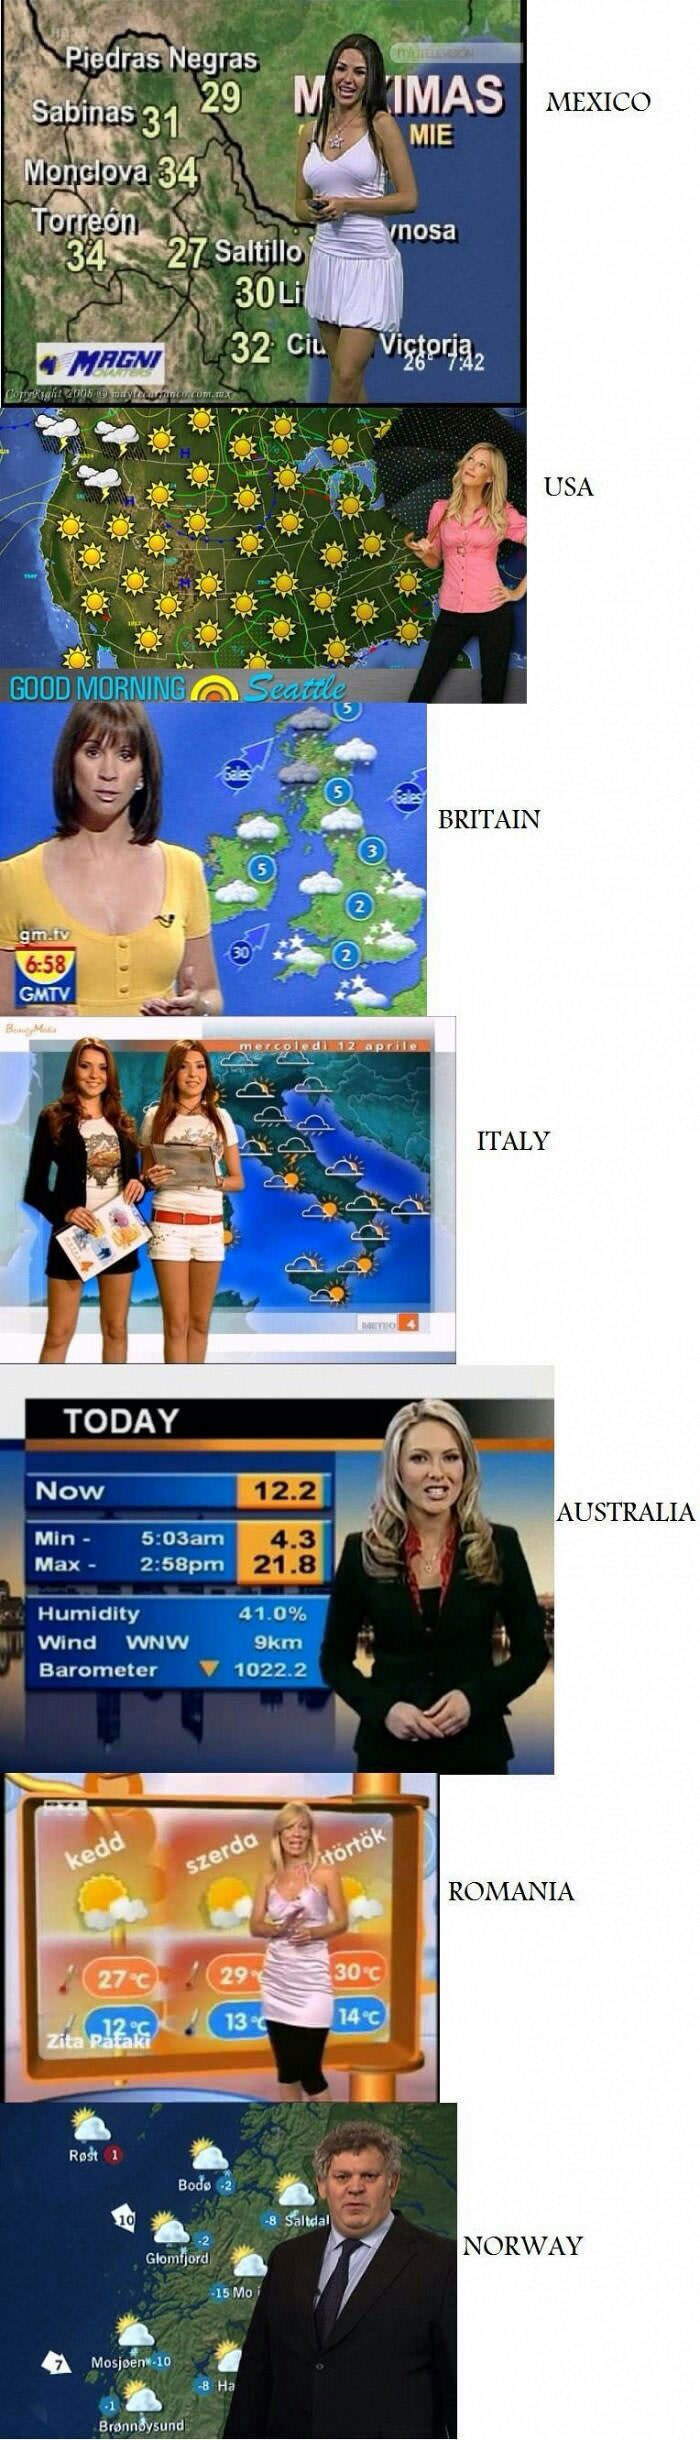 Hot Weather Women - JustPost: Virtually entertaining